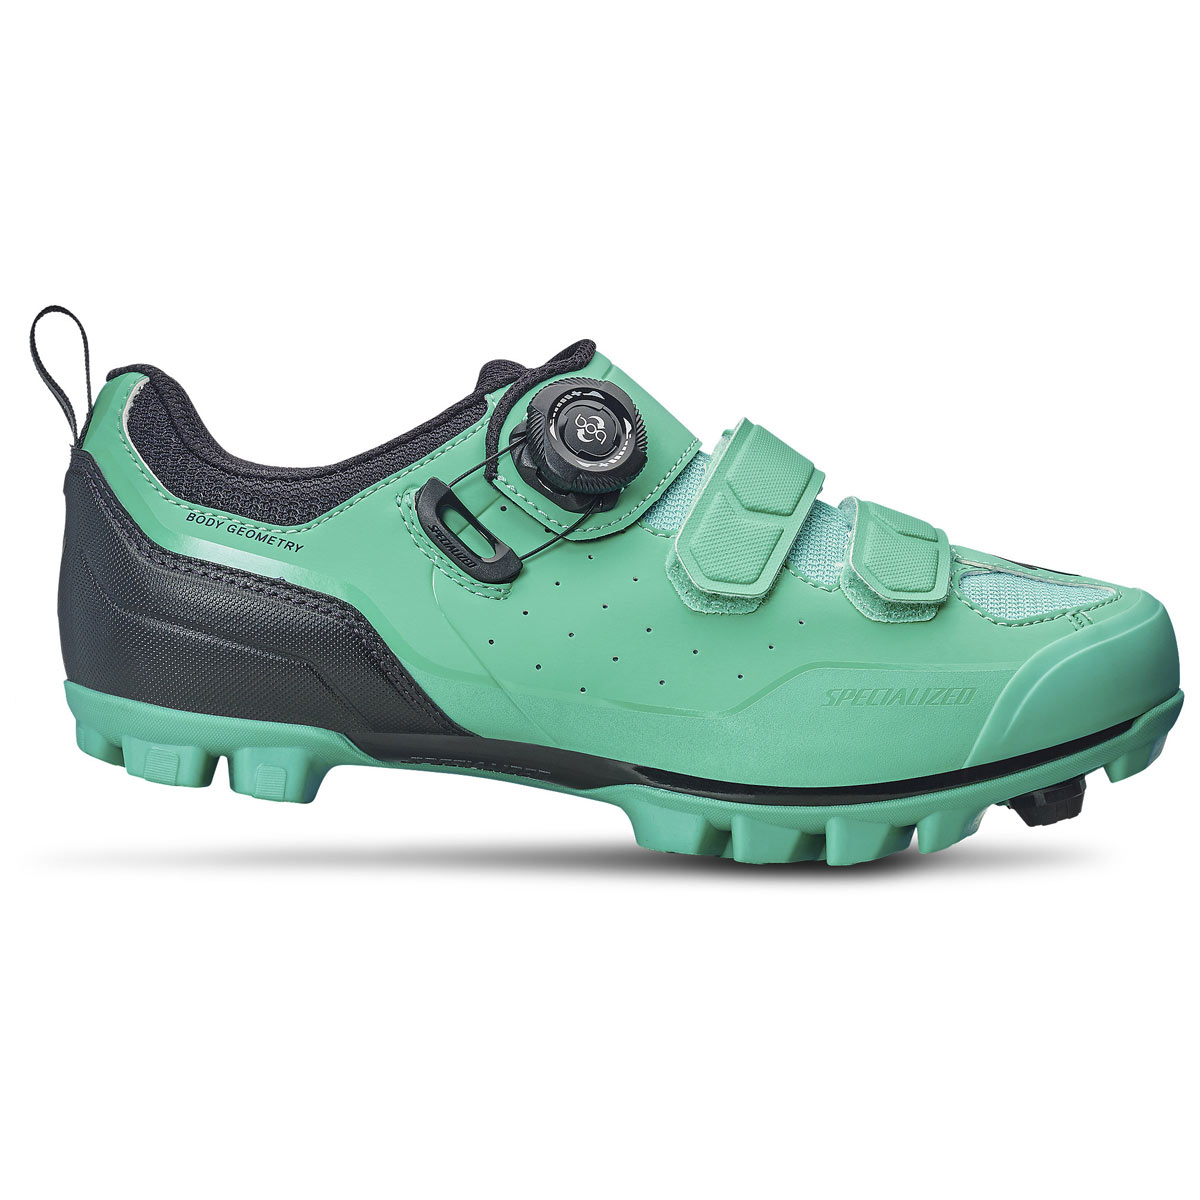 CHAUSSURES SPECIALIZED MOTODIVA FEMME